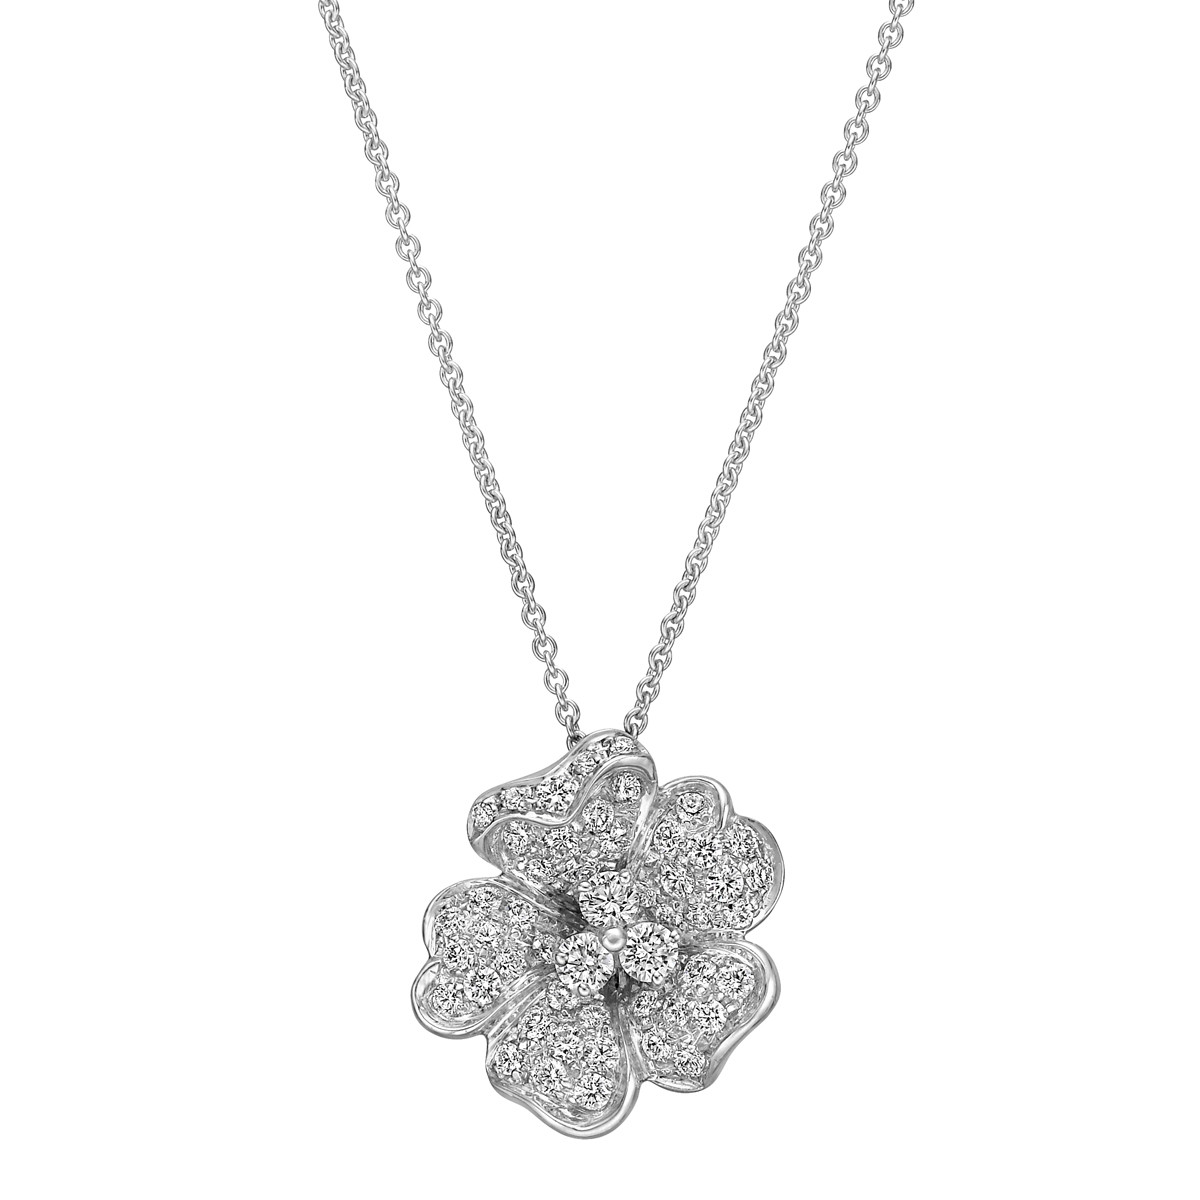 18k White Gold & Diamond Flower Pendant